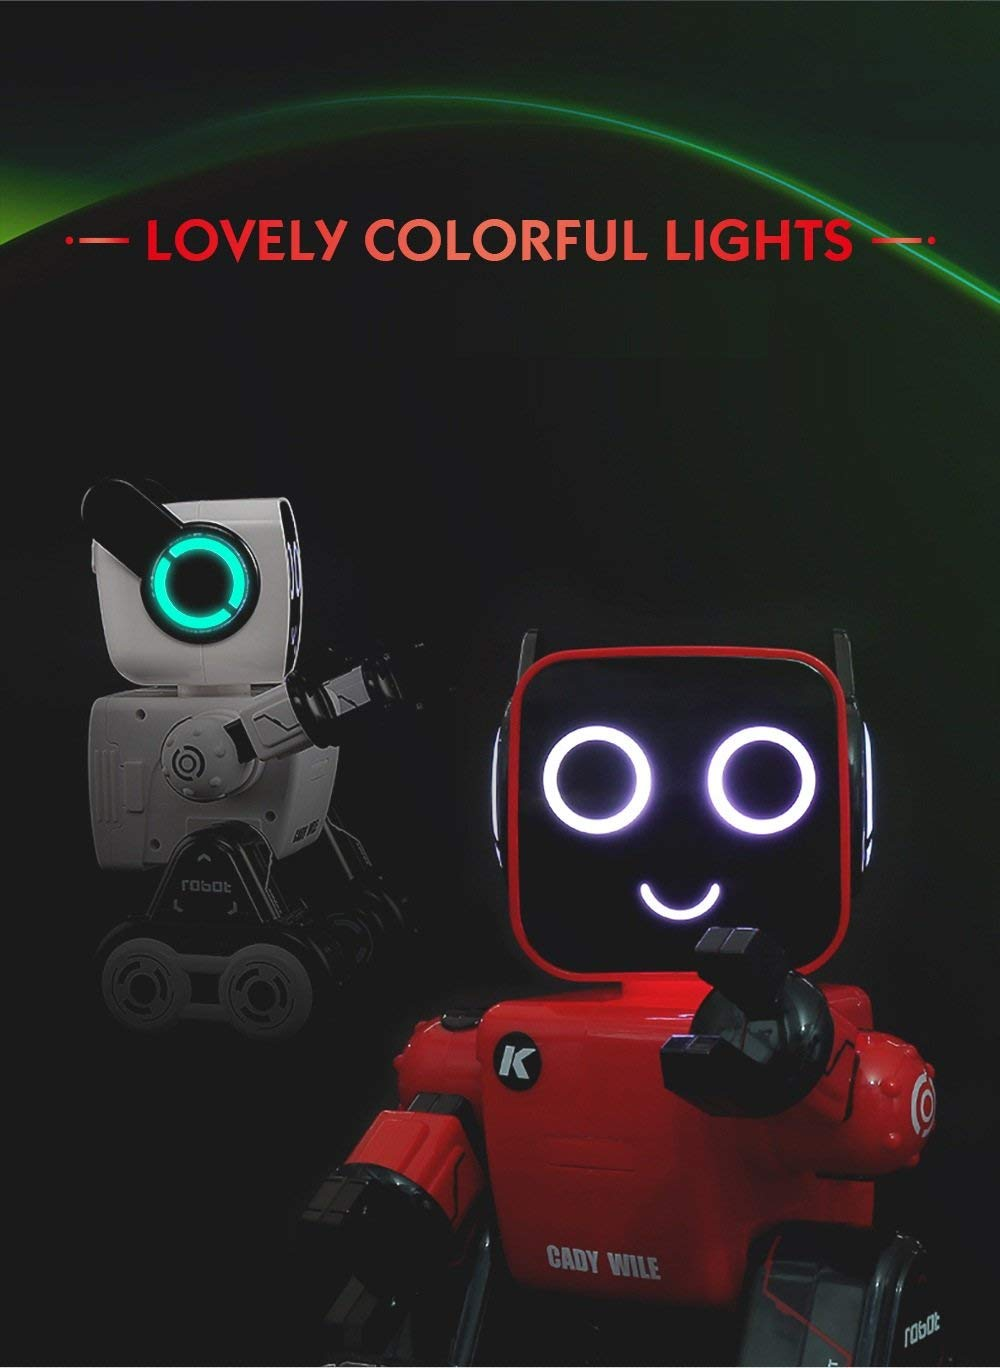 Hi-Tech Wireless Interactive Robot RC Robot Toy for Boys, Girls, Kids, Children (Red) by HI-TECH OPTOELETRONICS CO., LTD. (Image #7)